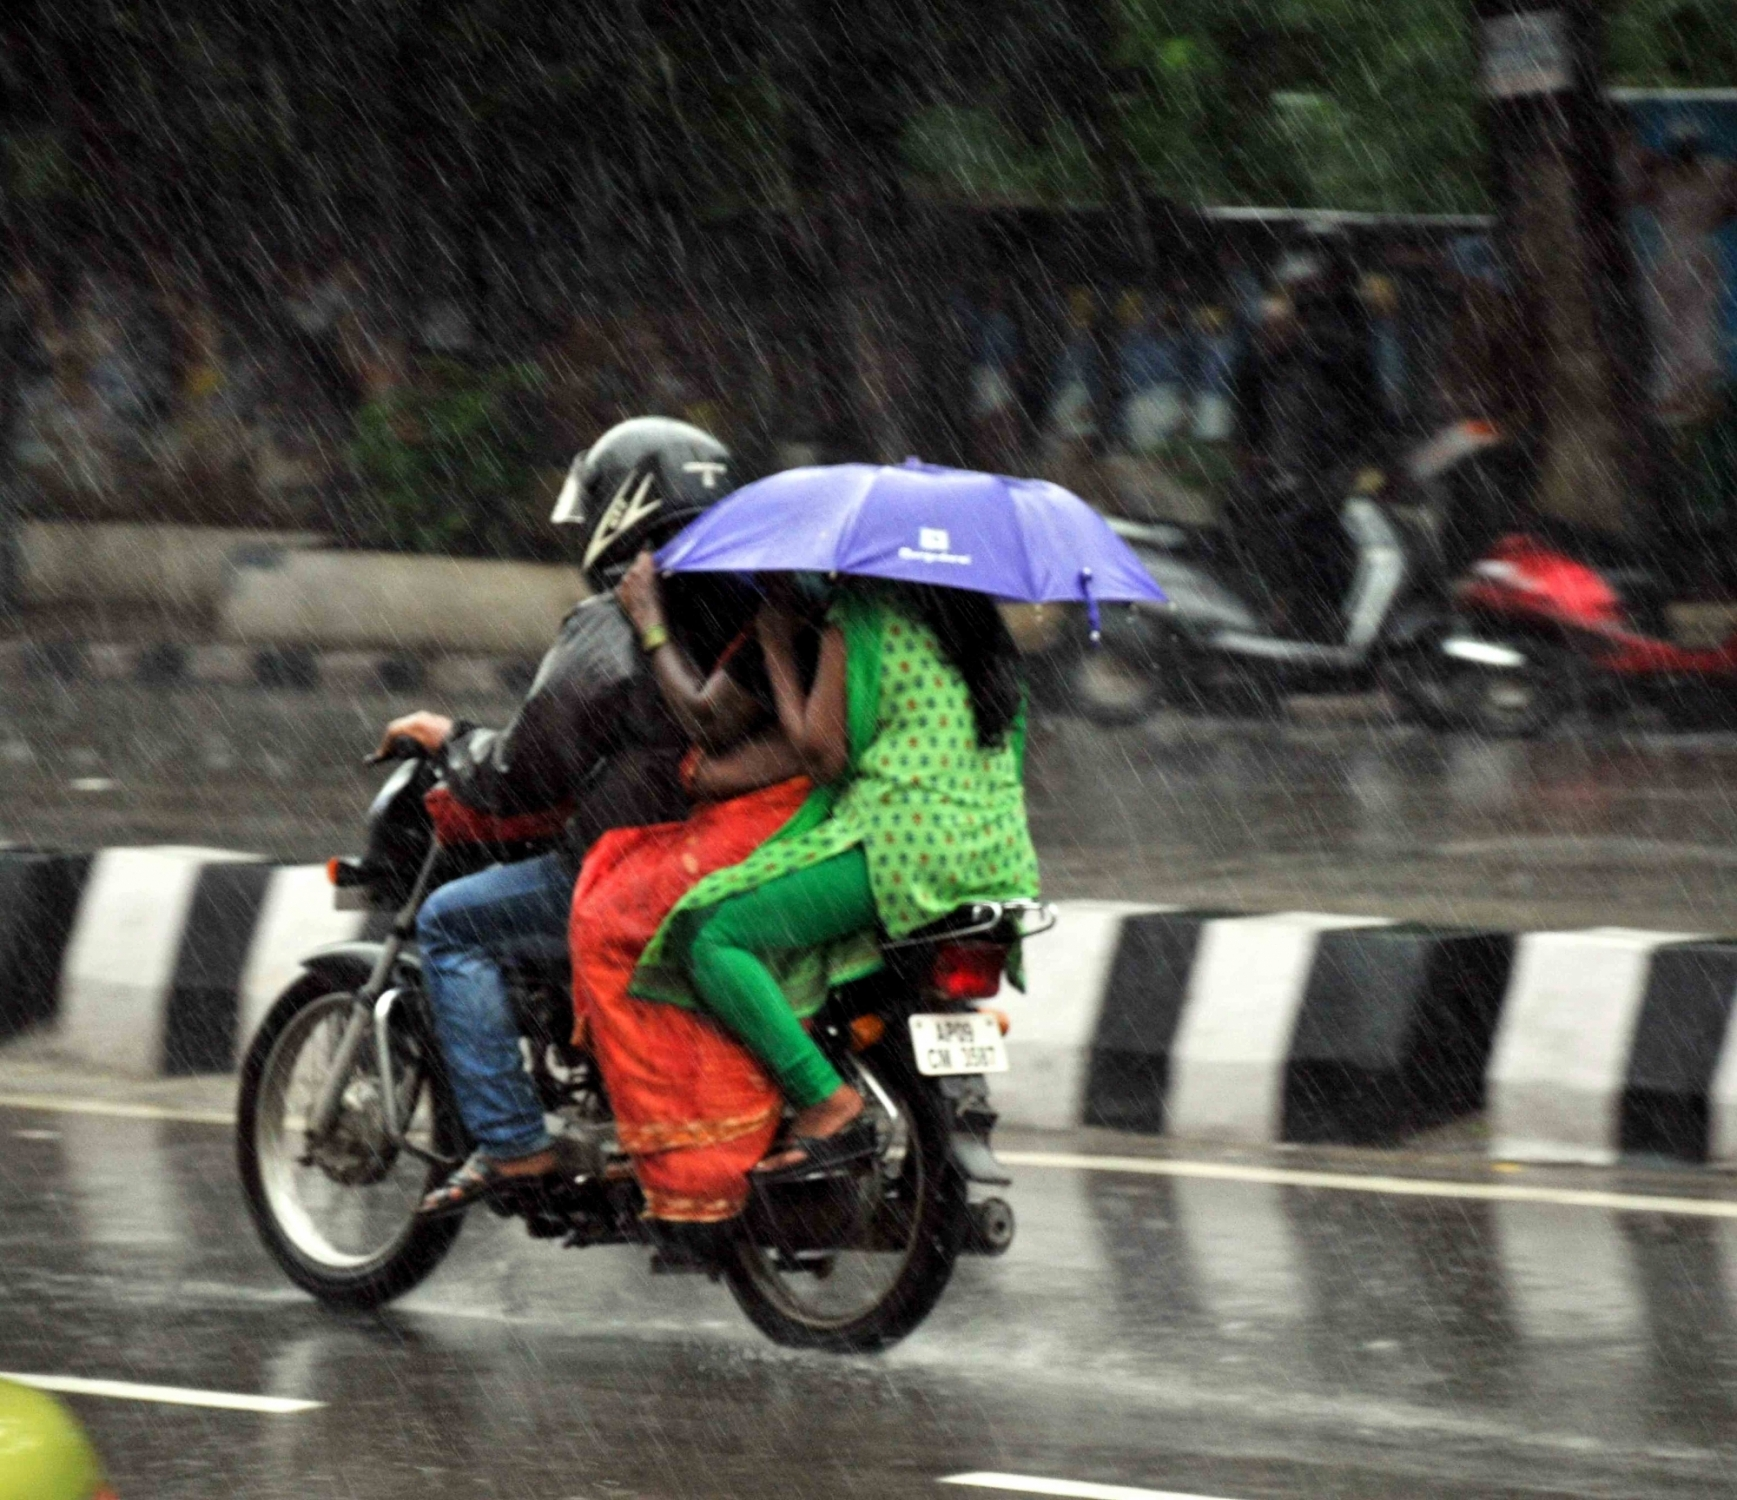 Riders on a motorcycle make a futile attempt at protecting themselves from the rain in Hyderabad. (Credit: IANS)